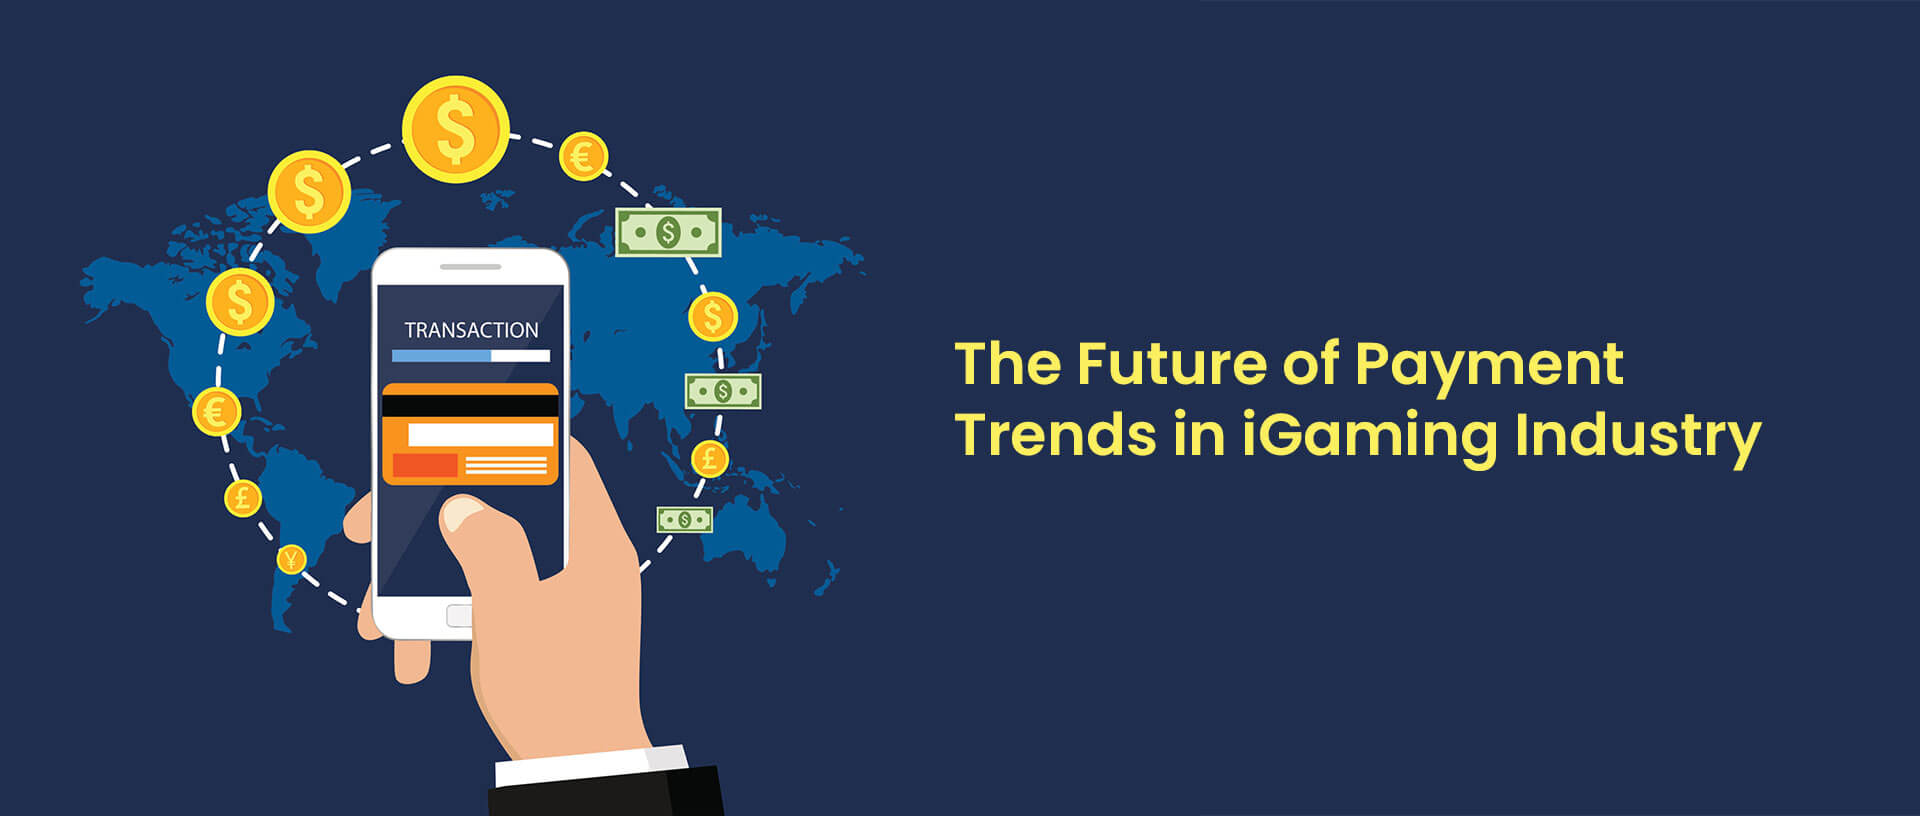 The Future of Payment Trends in iGaming Industry - Image 1